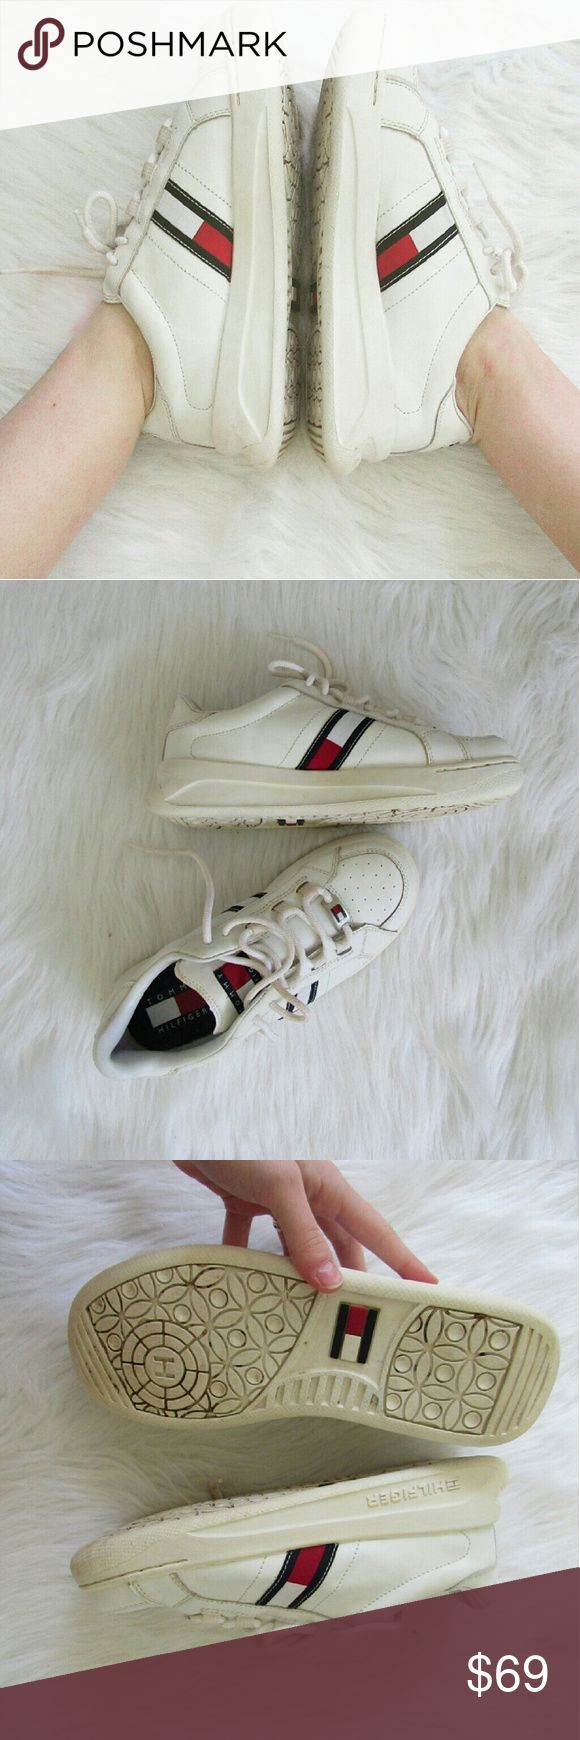 """90s Tommy Hilfiger Sneakers These shoes are """"All That!"""" The 90s are back so reunite with your favorite Tommy sneakers! These sneakers are in great condition! The leather uppers have no scrapes. They have been wiped clean but would look even more sharp if you went over them with a tide-to-go pen.  Big logos on the side. Small logos threaded into bottoms of laces. They are squishy and comfy. Nice platform and perfectly clunky. Small pull on one of the laces. Some light dirtiness on laces and…"""